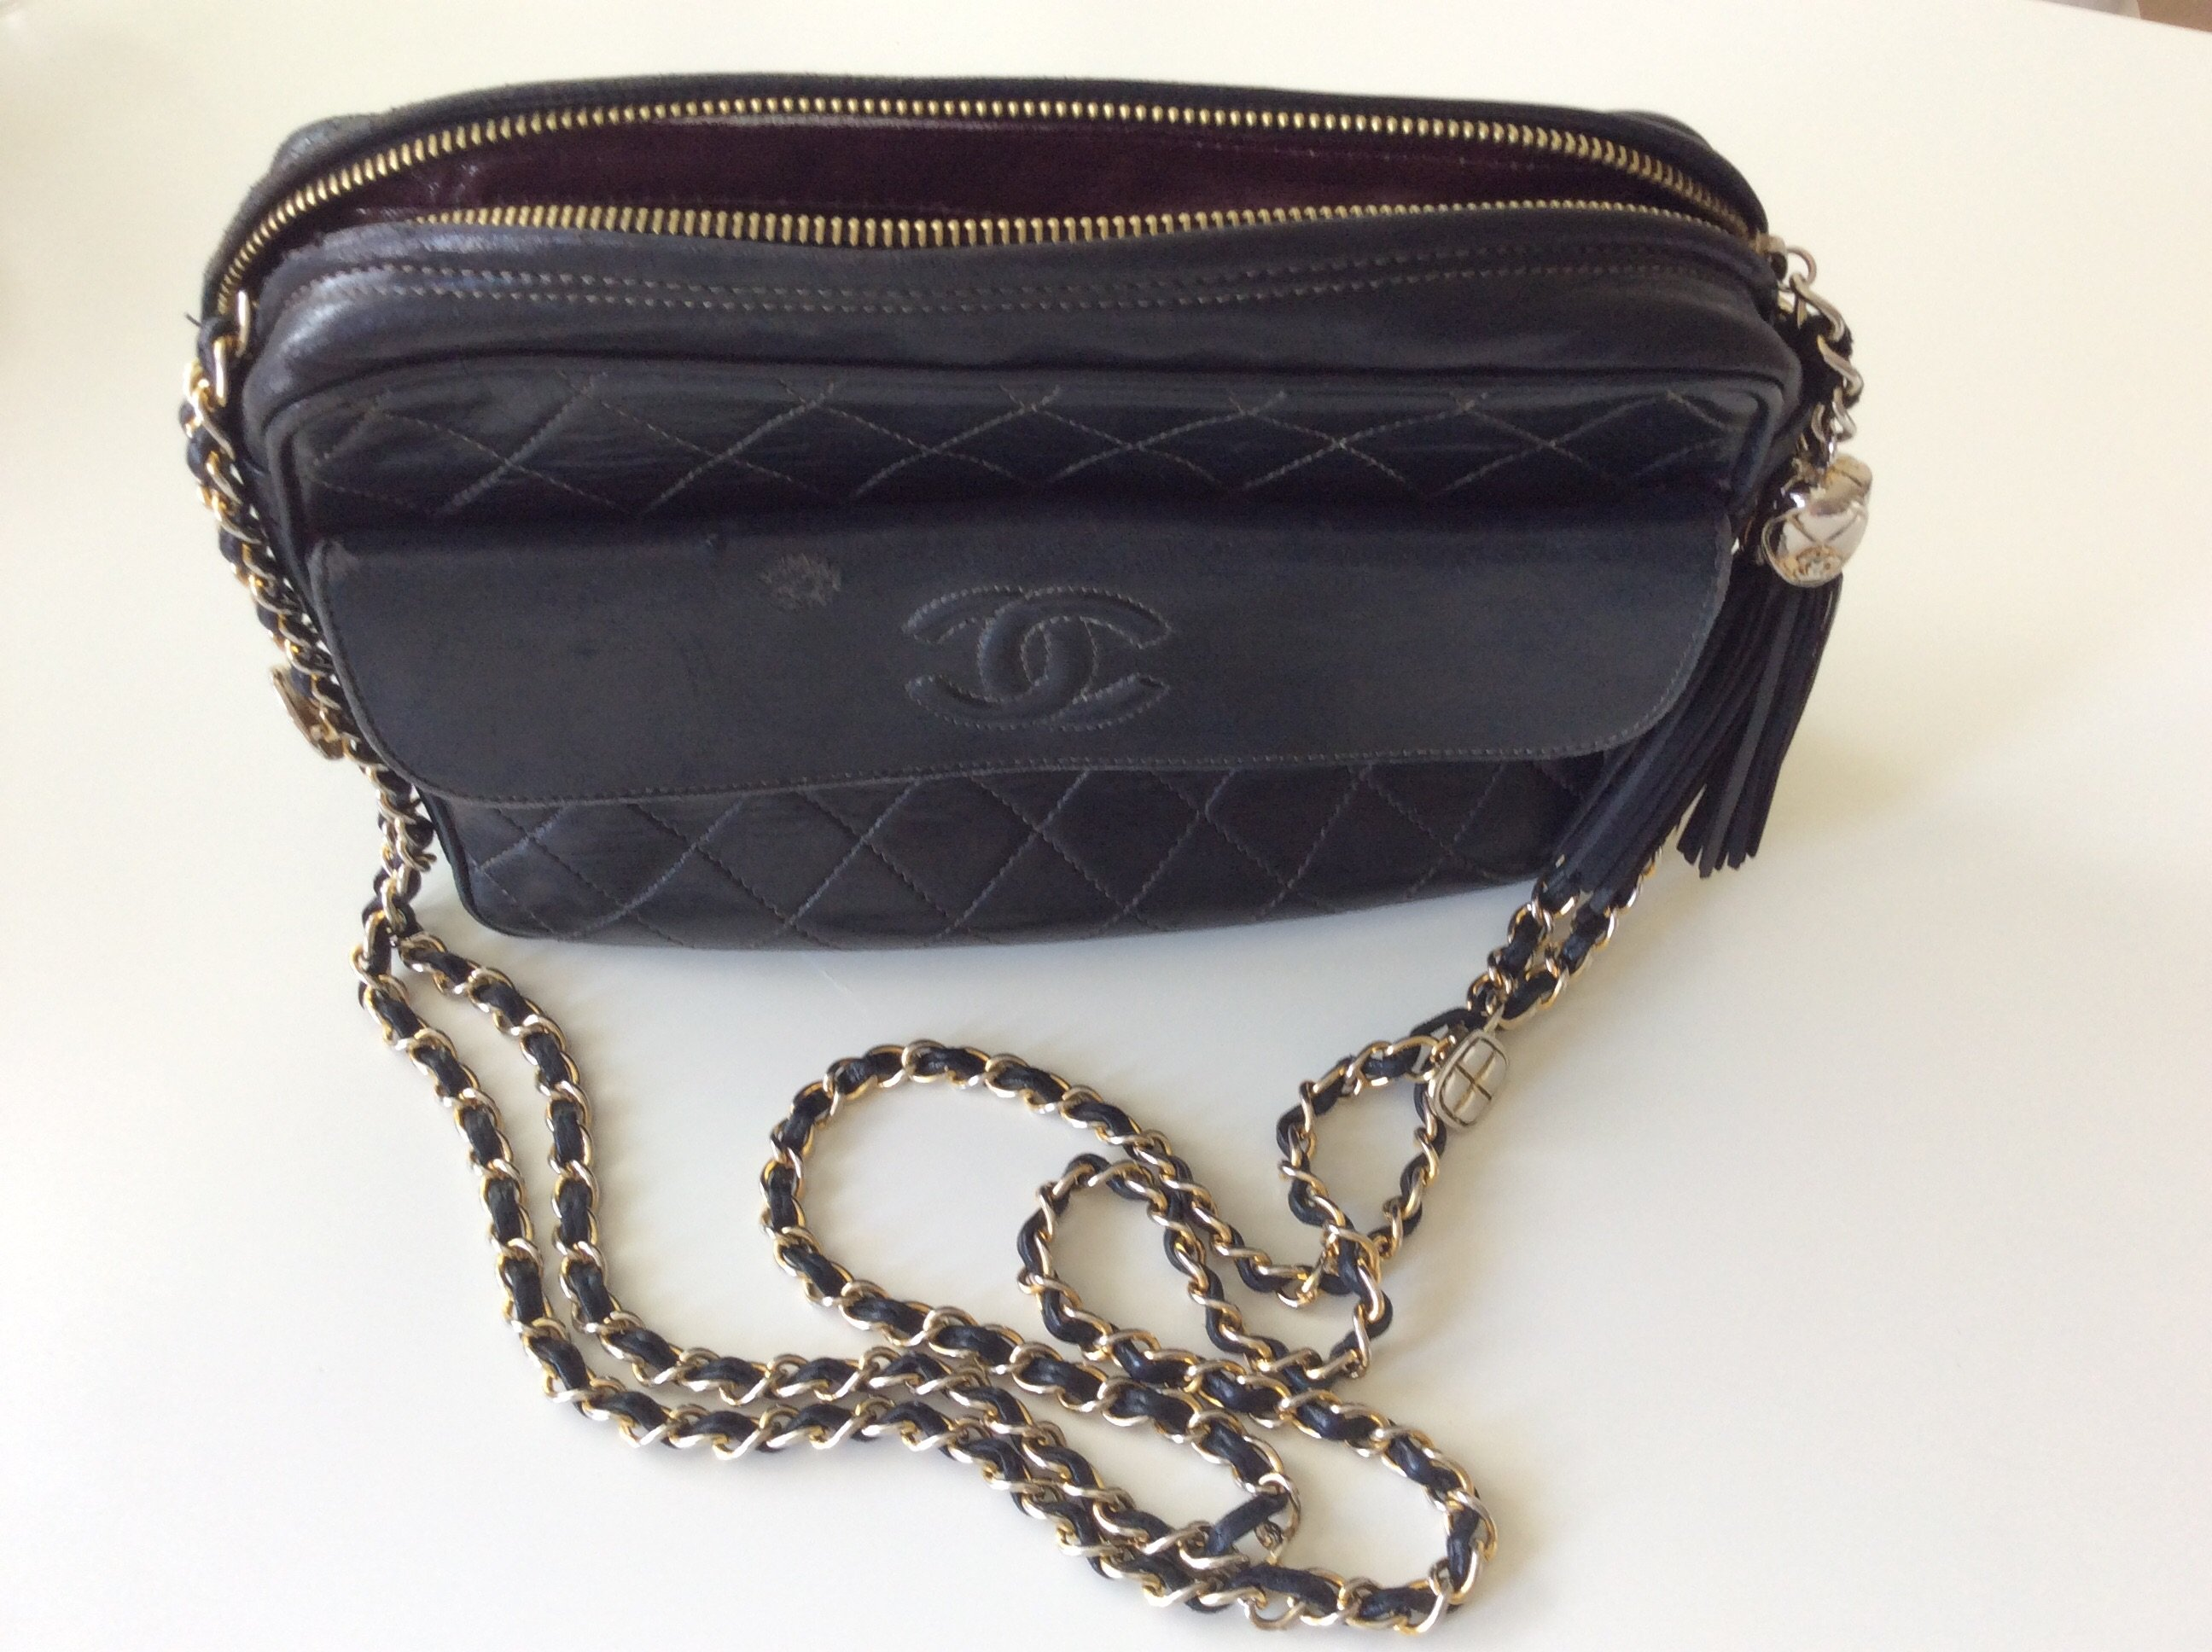 handbags shopping totes the large products women in tote chains enlarged chanel